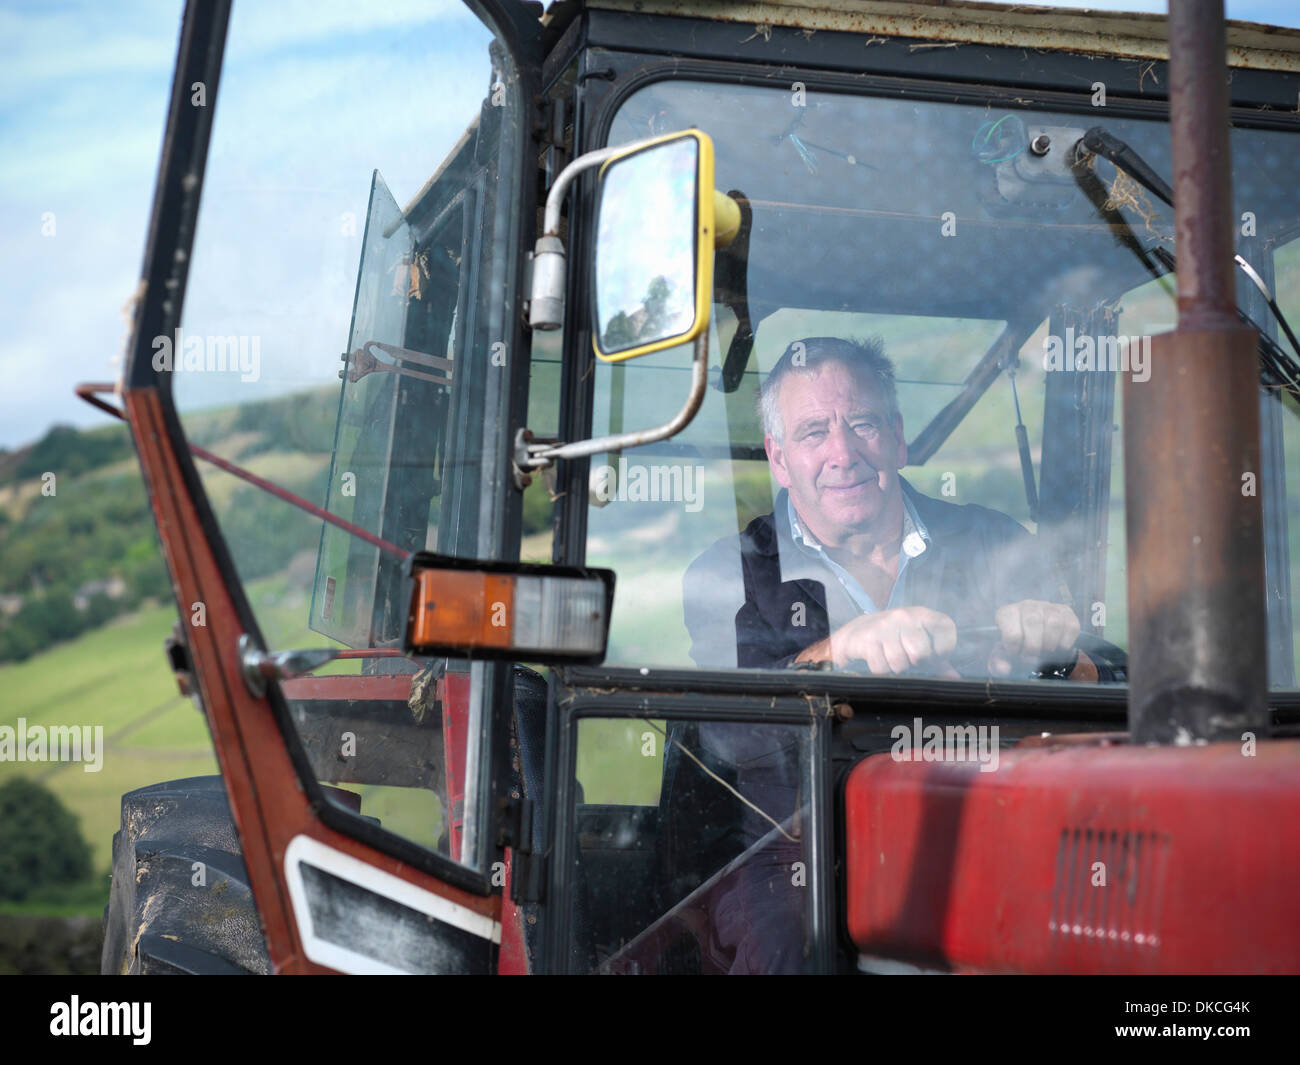 Mature farmer in tractor cab, portrait - Stock Image